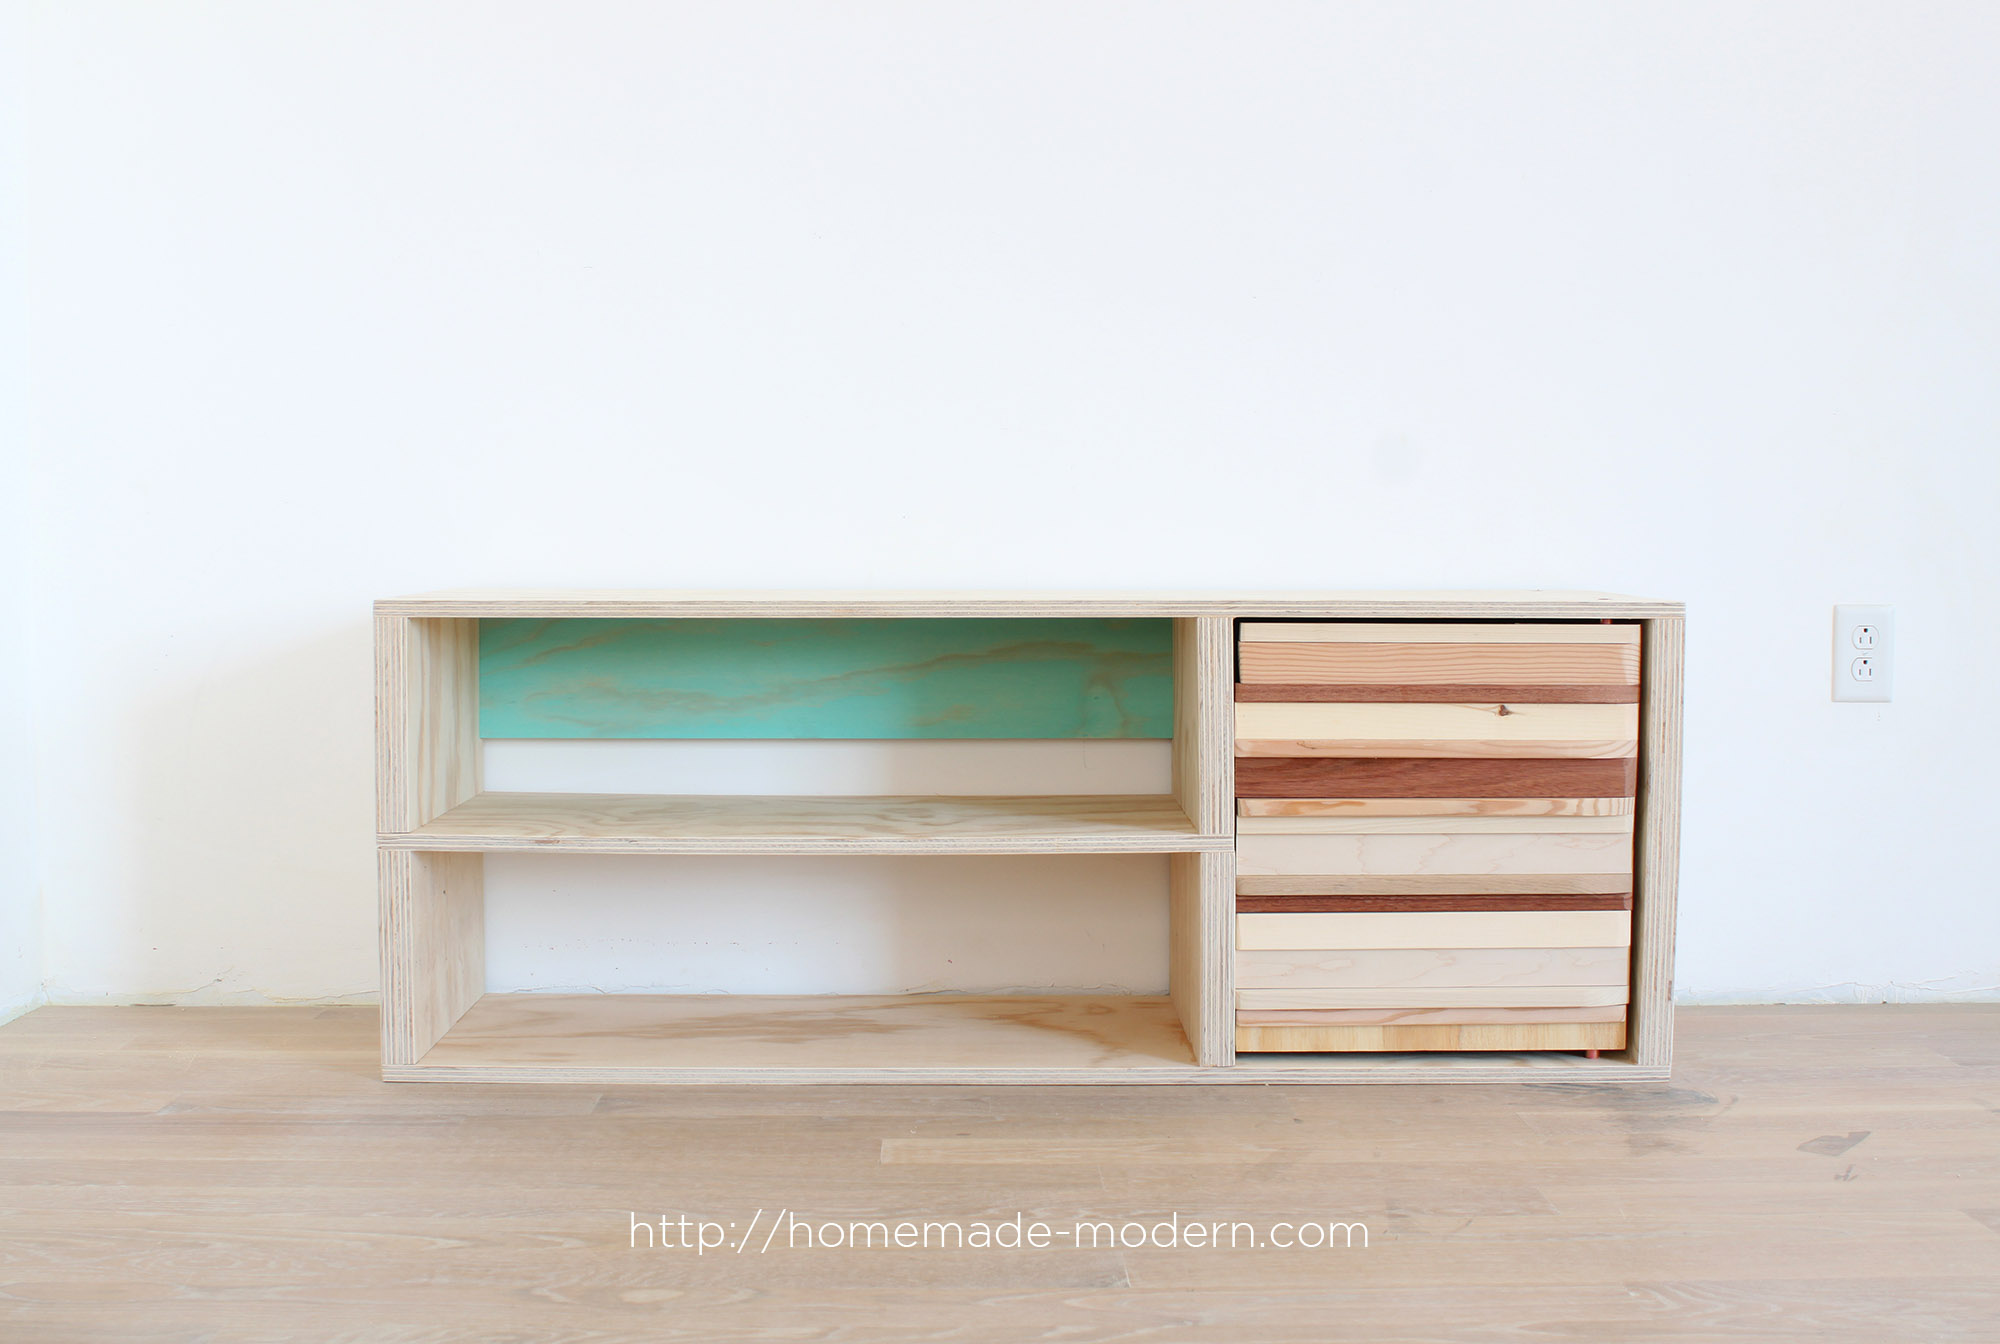 Superb This DIY Shoe Cabinet Is Made From Wood Scraps And A Painted Back Panel.  Full Part 29